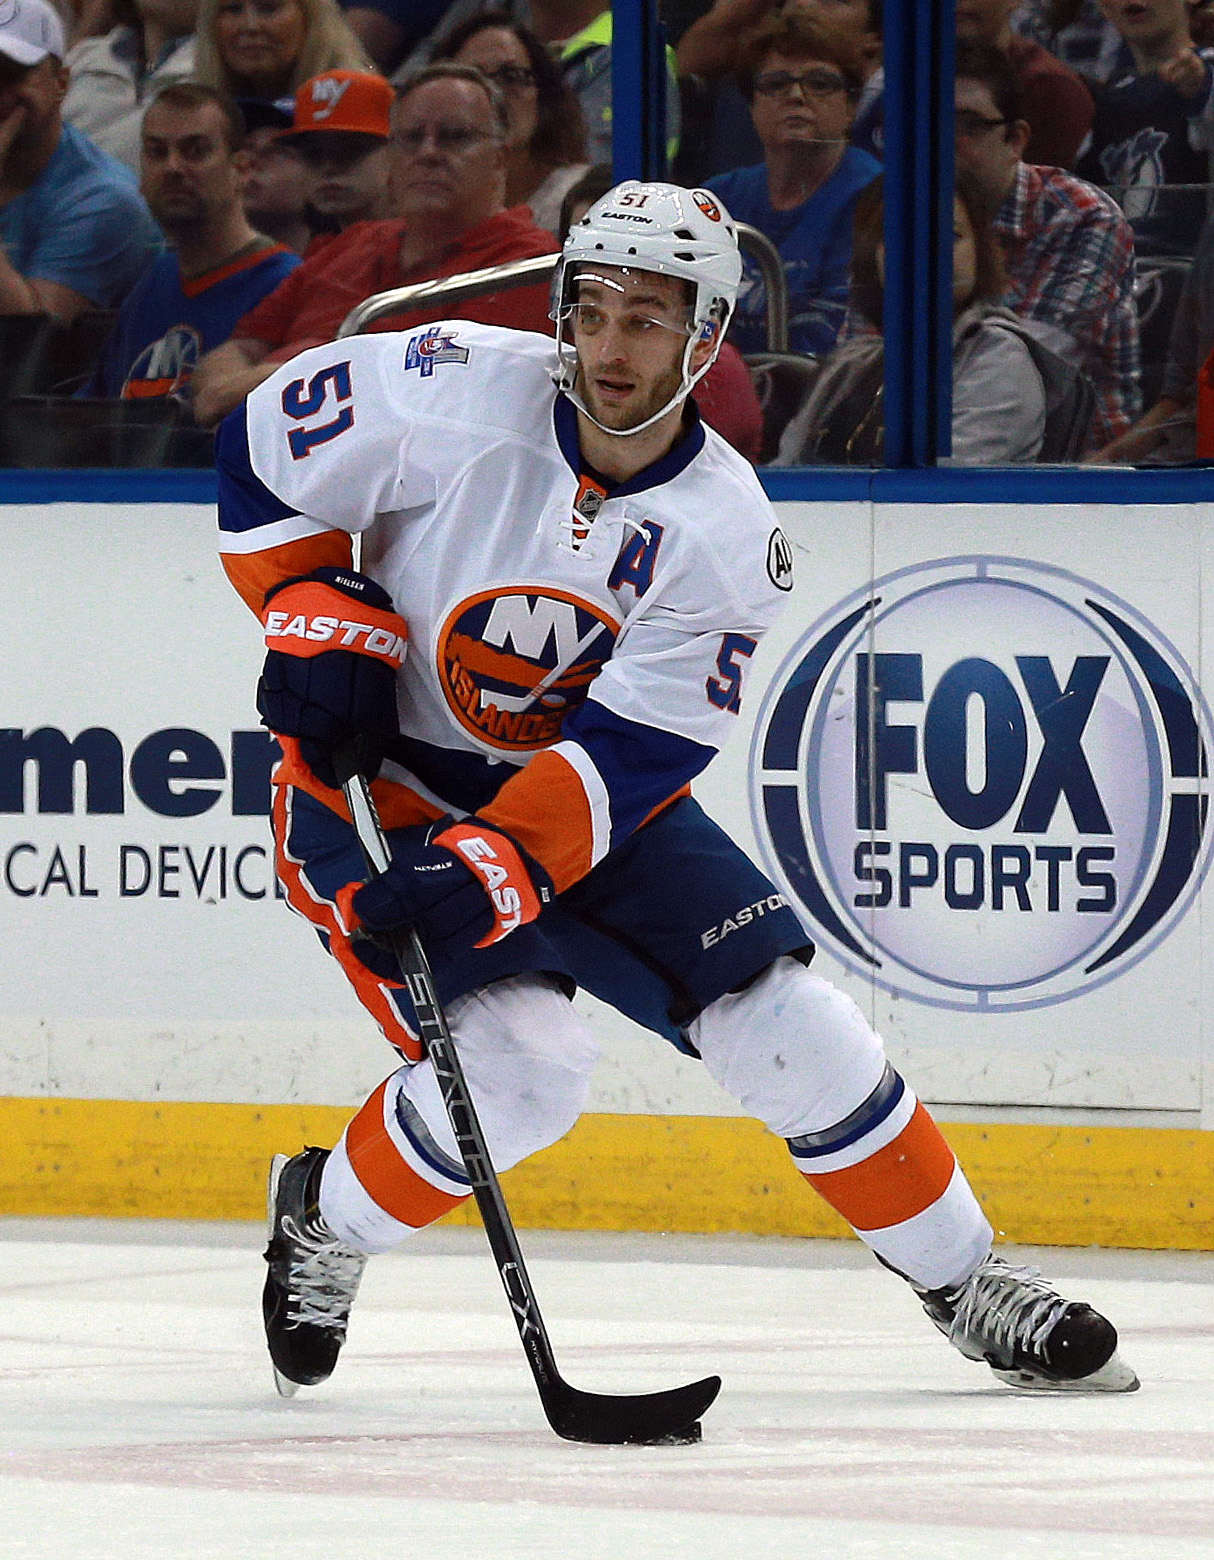 Frans Nielsen is the newest member of the Detroit Red Wings